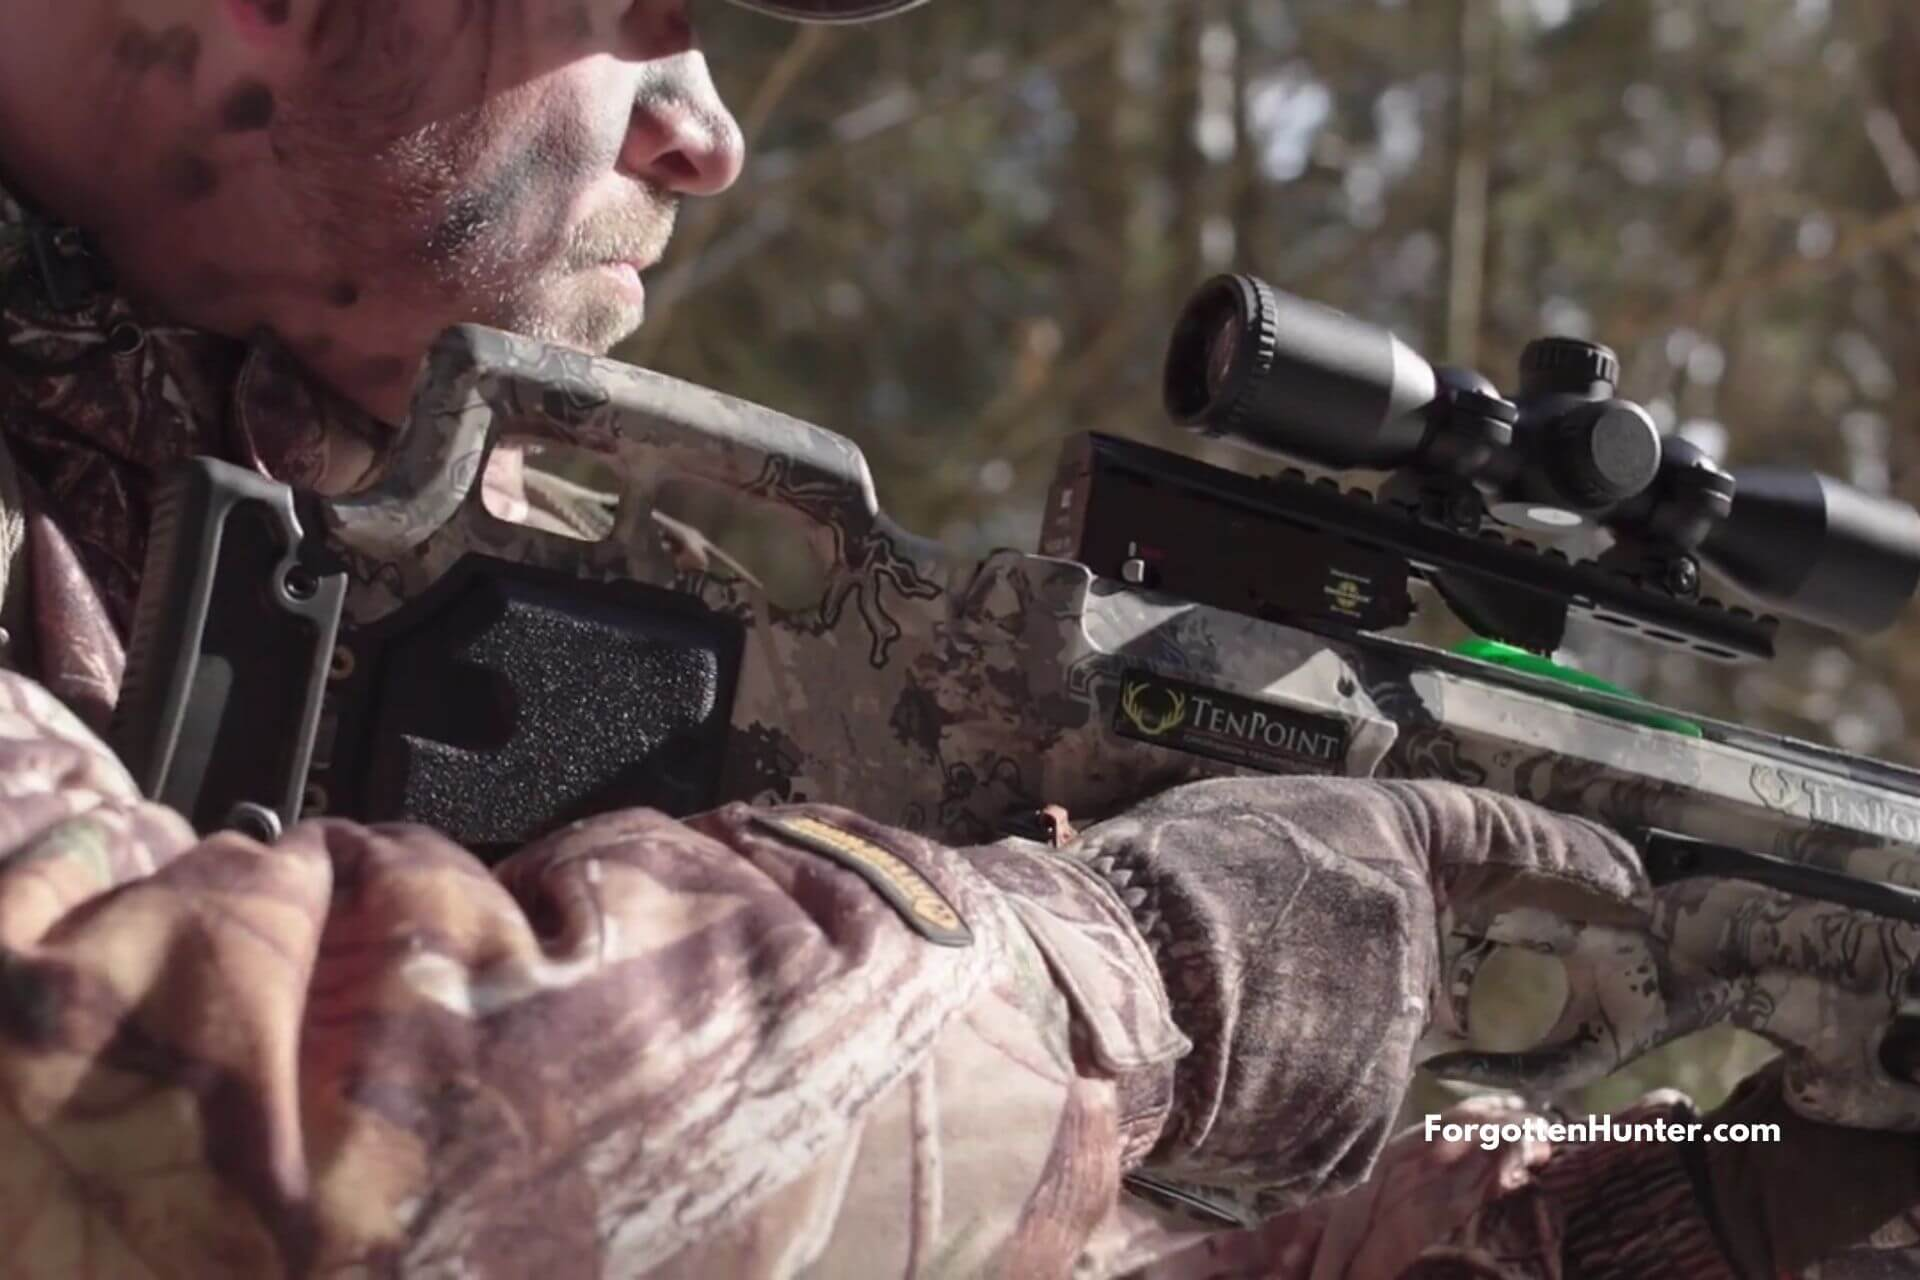 TenPoint Titan M1 Crossbow Review - Best Crossbow for the Money in 2020?